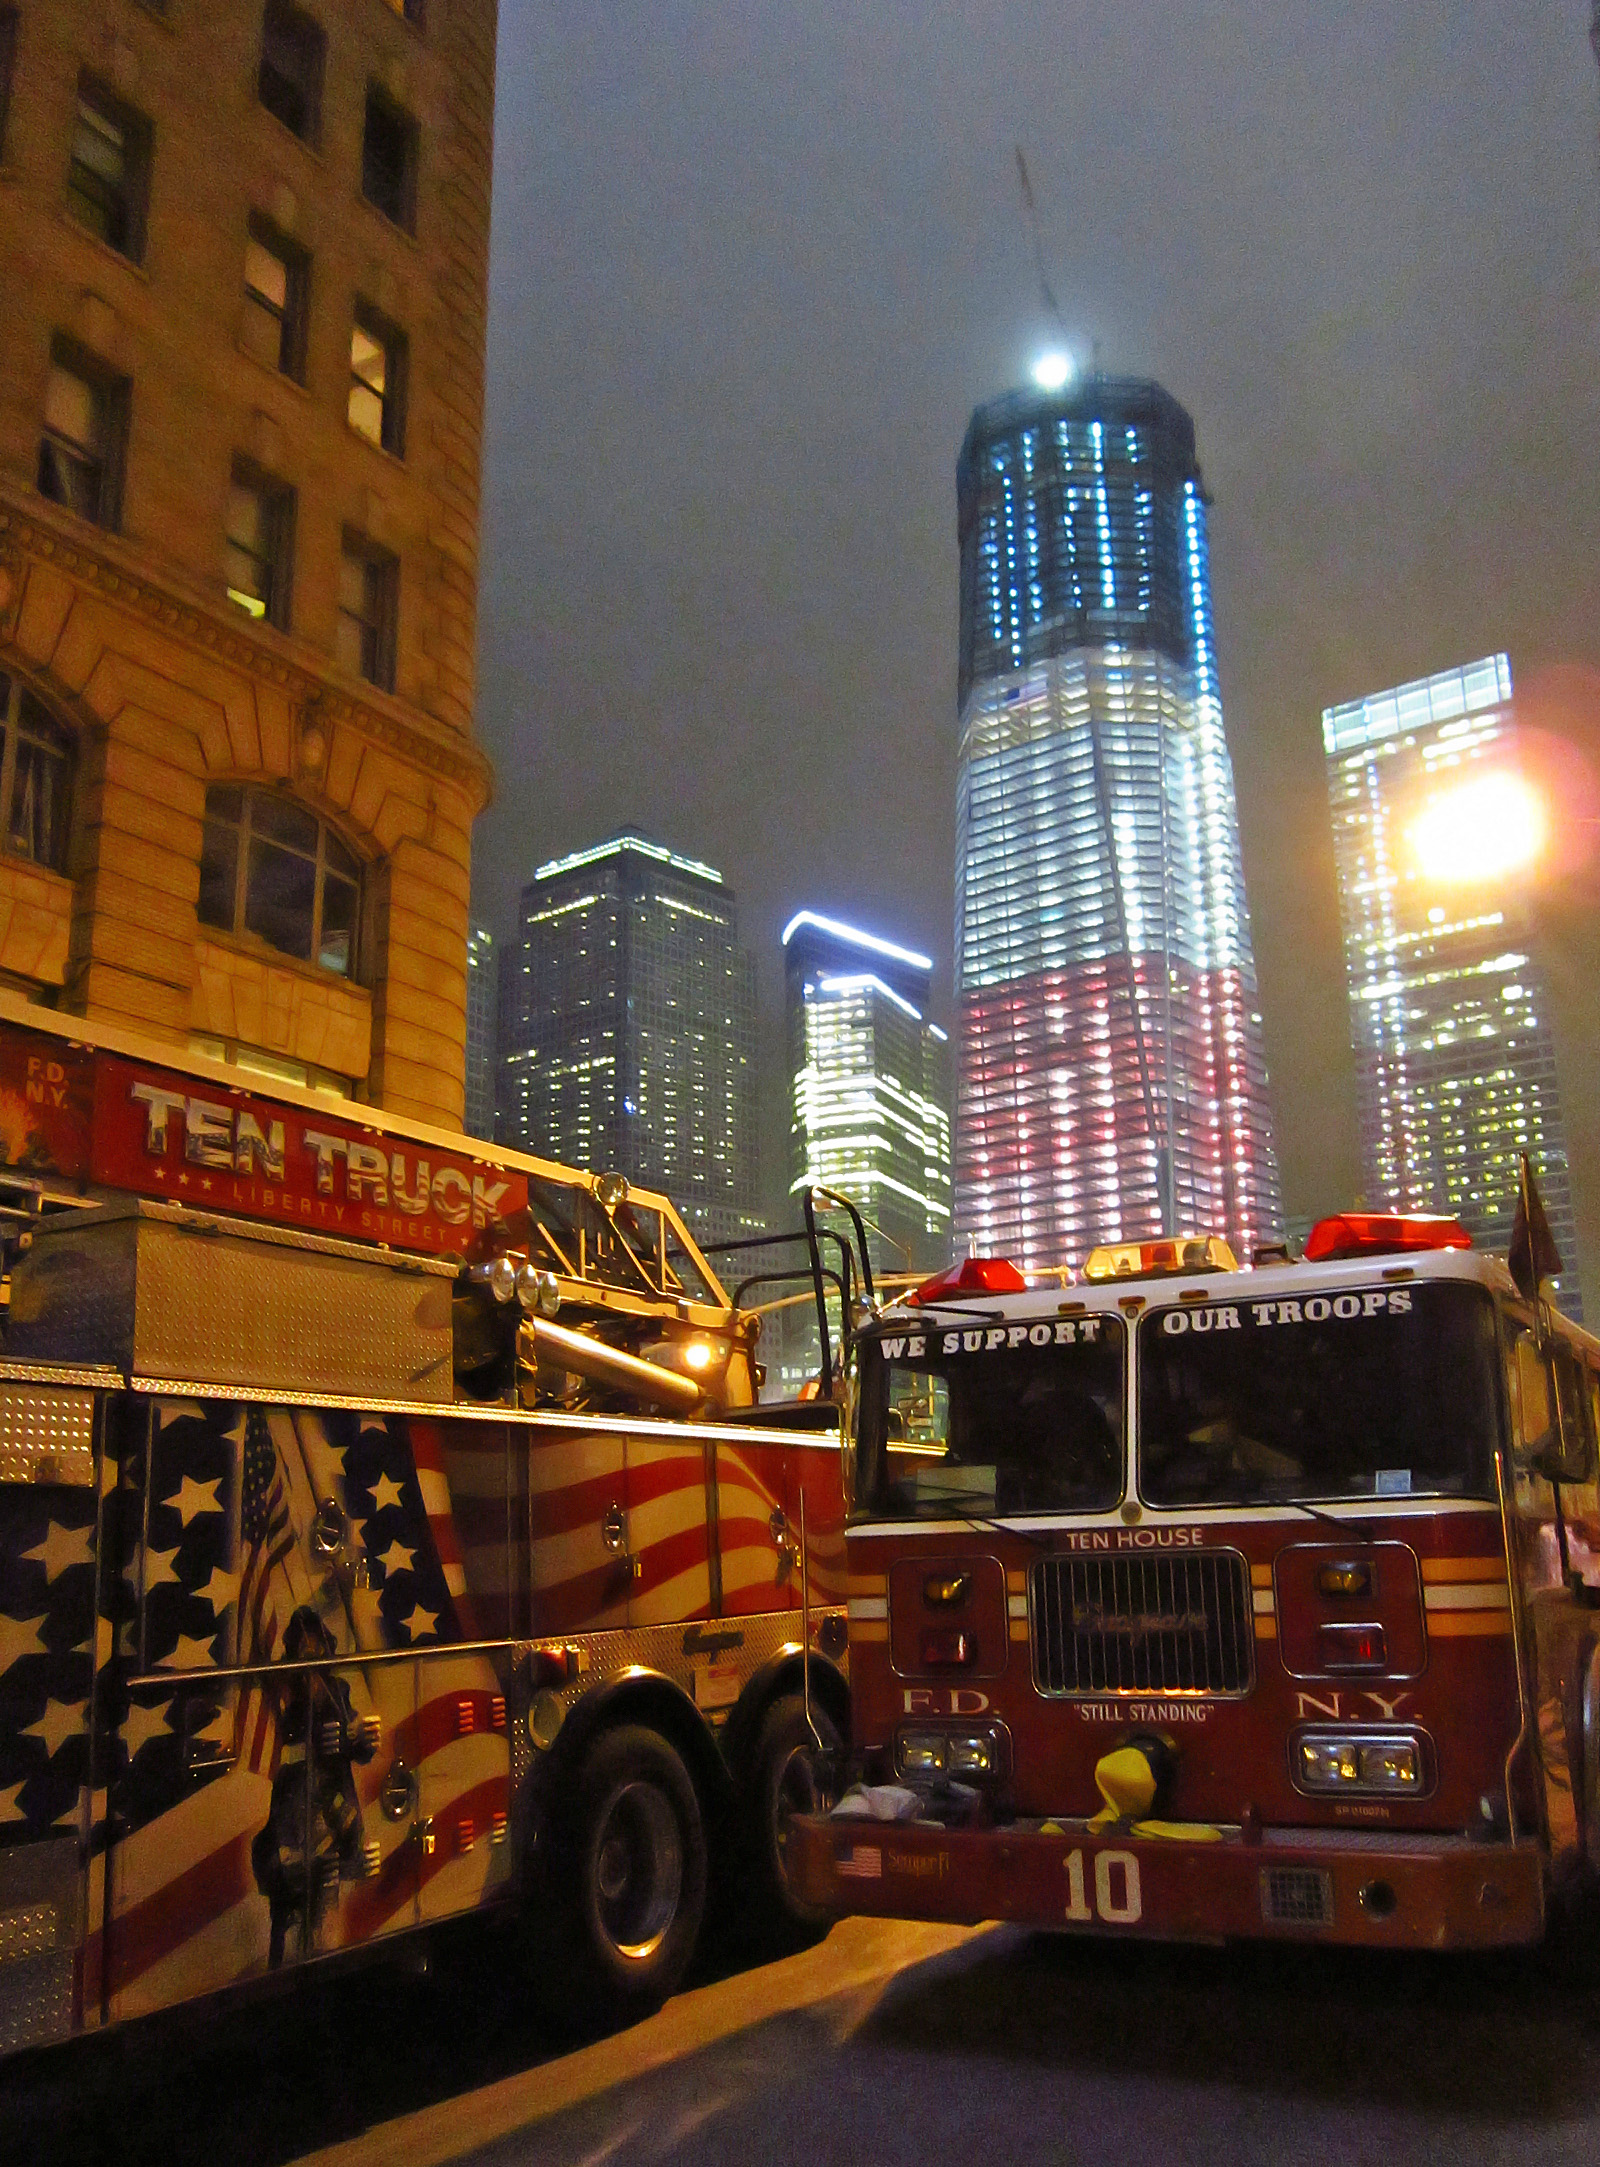 FDNY & One World Trade